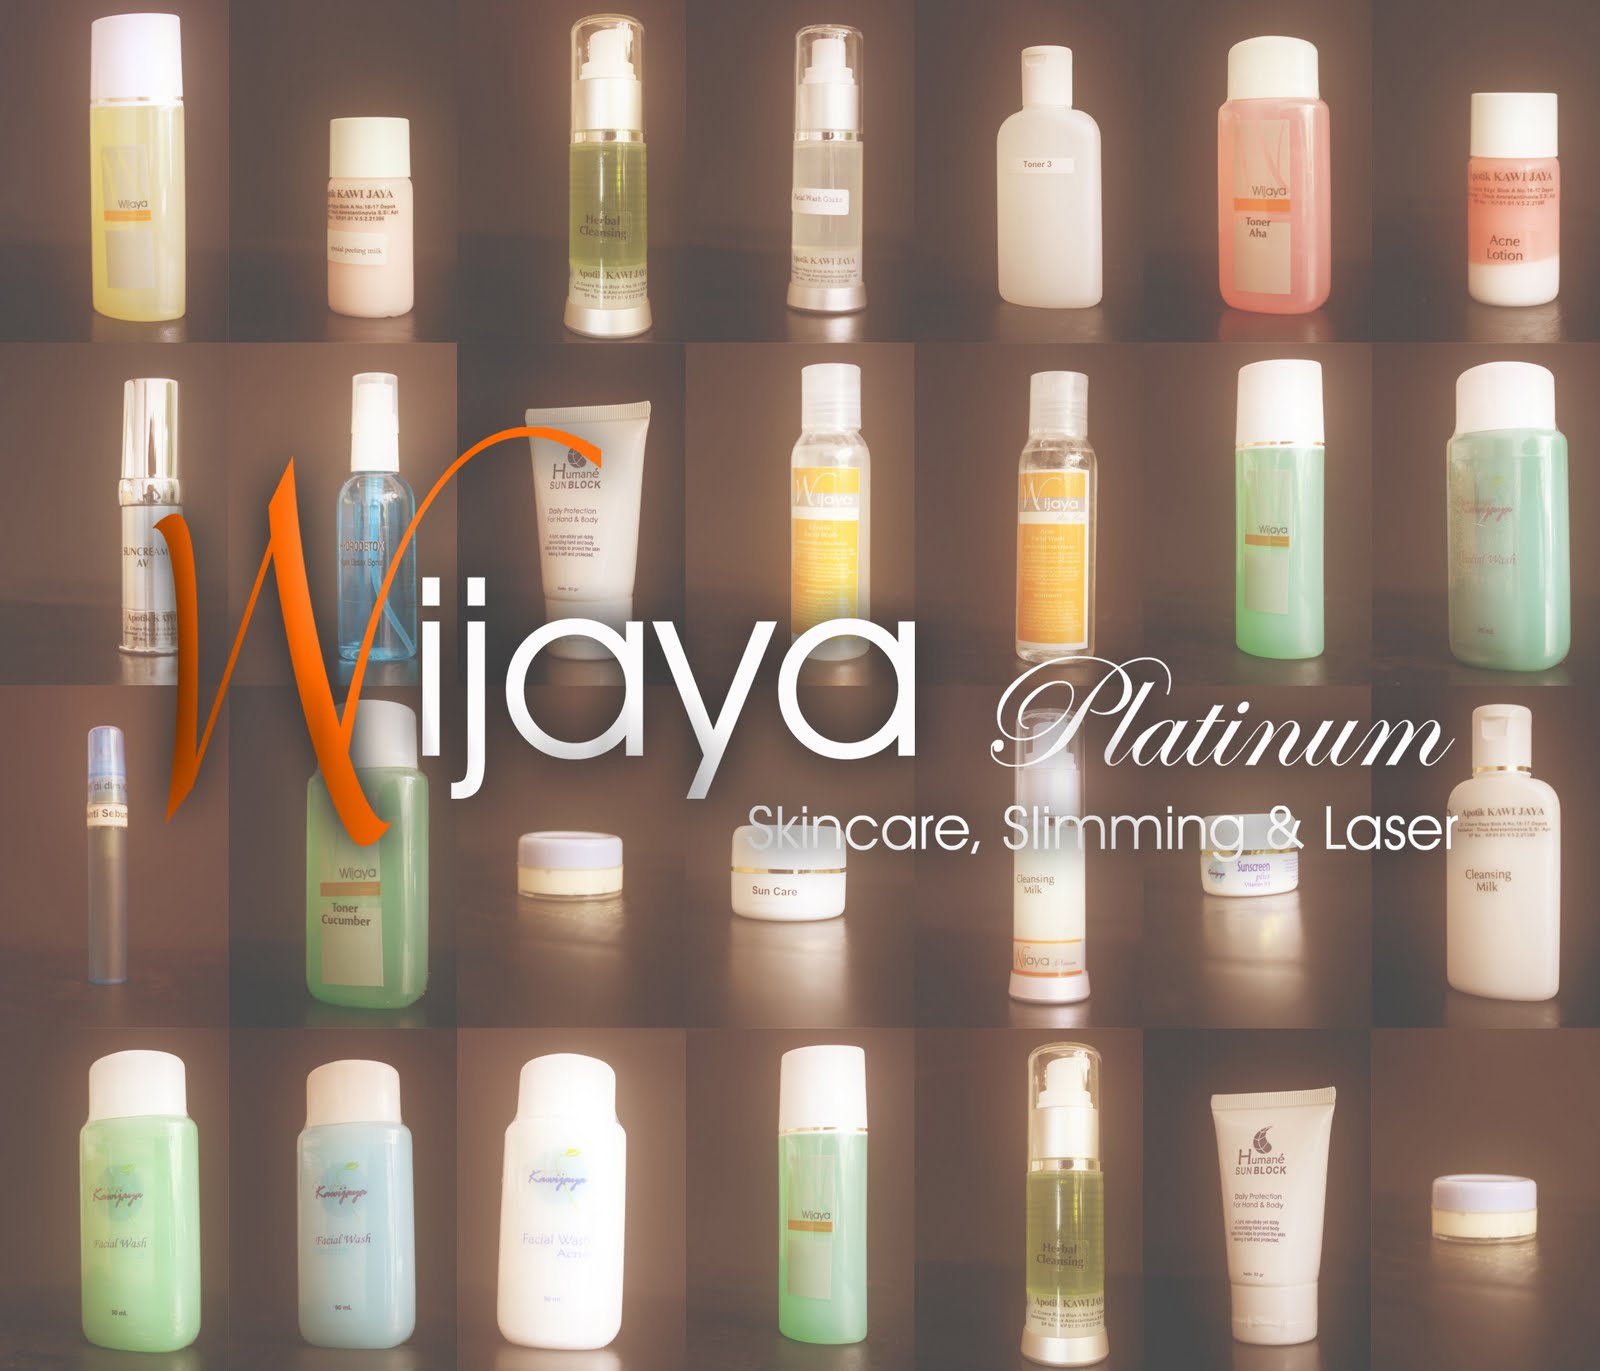 Wijaya Skincare Platinum